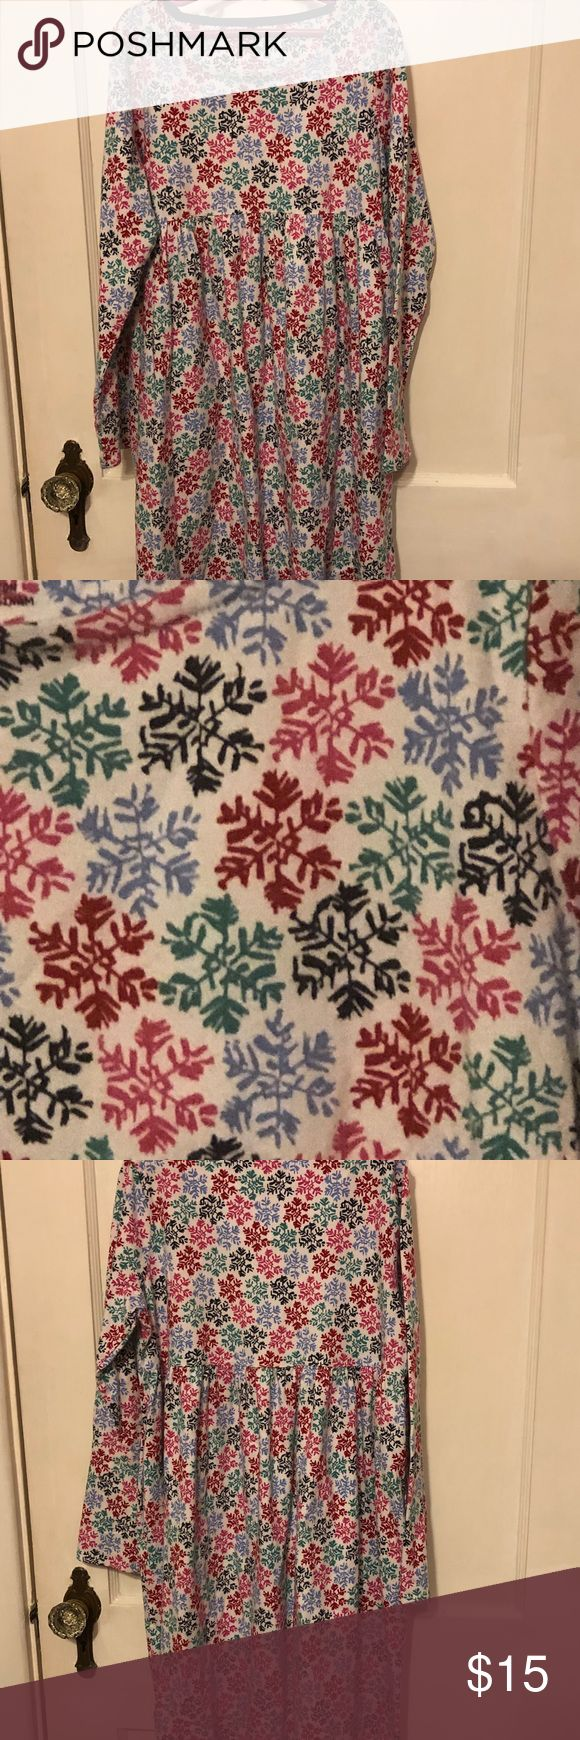 """Lands End Kids snowflake dress size M 10+-12+ This is a Lands End Kids Dress.  It has a snowflake design.  Snowflakes are red, pink, green, light blue and navy blue.  100% cotton.  Size M (10+-12+).  Measures 17"""" armpit to armpit and 33.5"""" shoulder to hem.  It's in great condition. No rips, stains or tears. Lands' End Dresses Casual"""